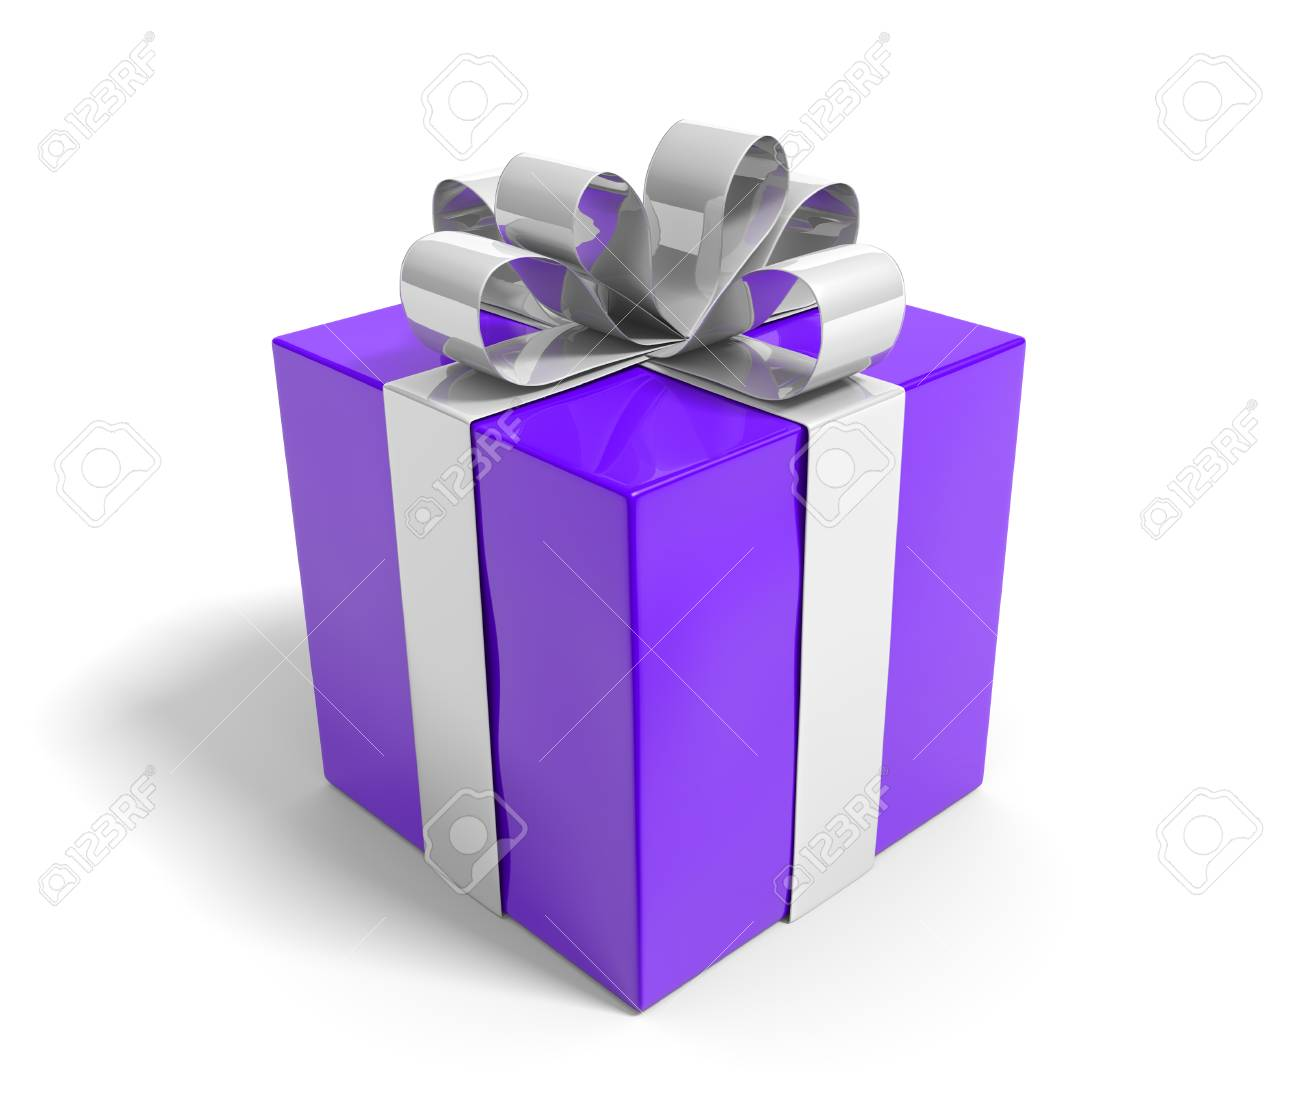 Pretty purple gift box tied with shiny silver ribbons Stock Photo - 34173060  sc 1 st  123RF.com & Pretty Purple Gift Box Tied With Shiny Silver Ribbons Stock Photo ...